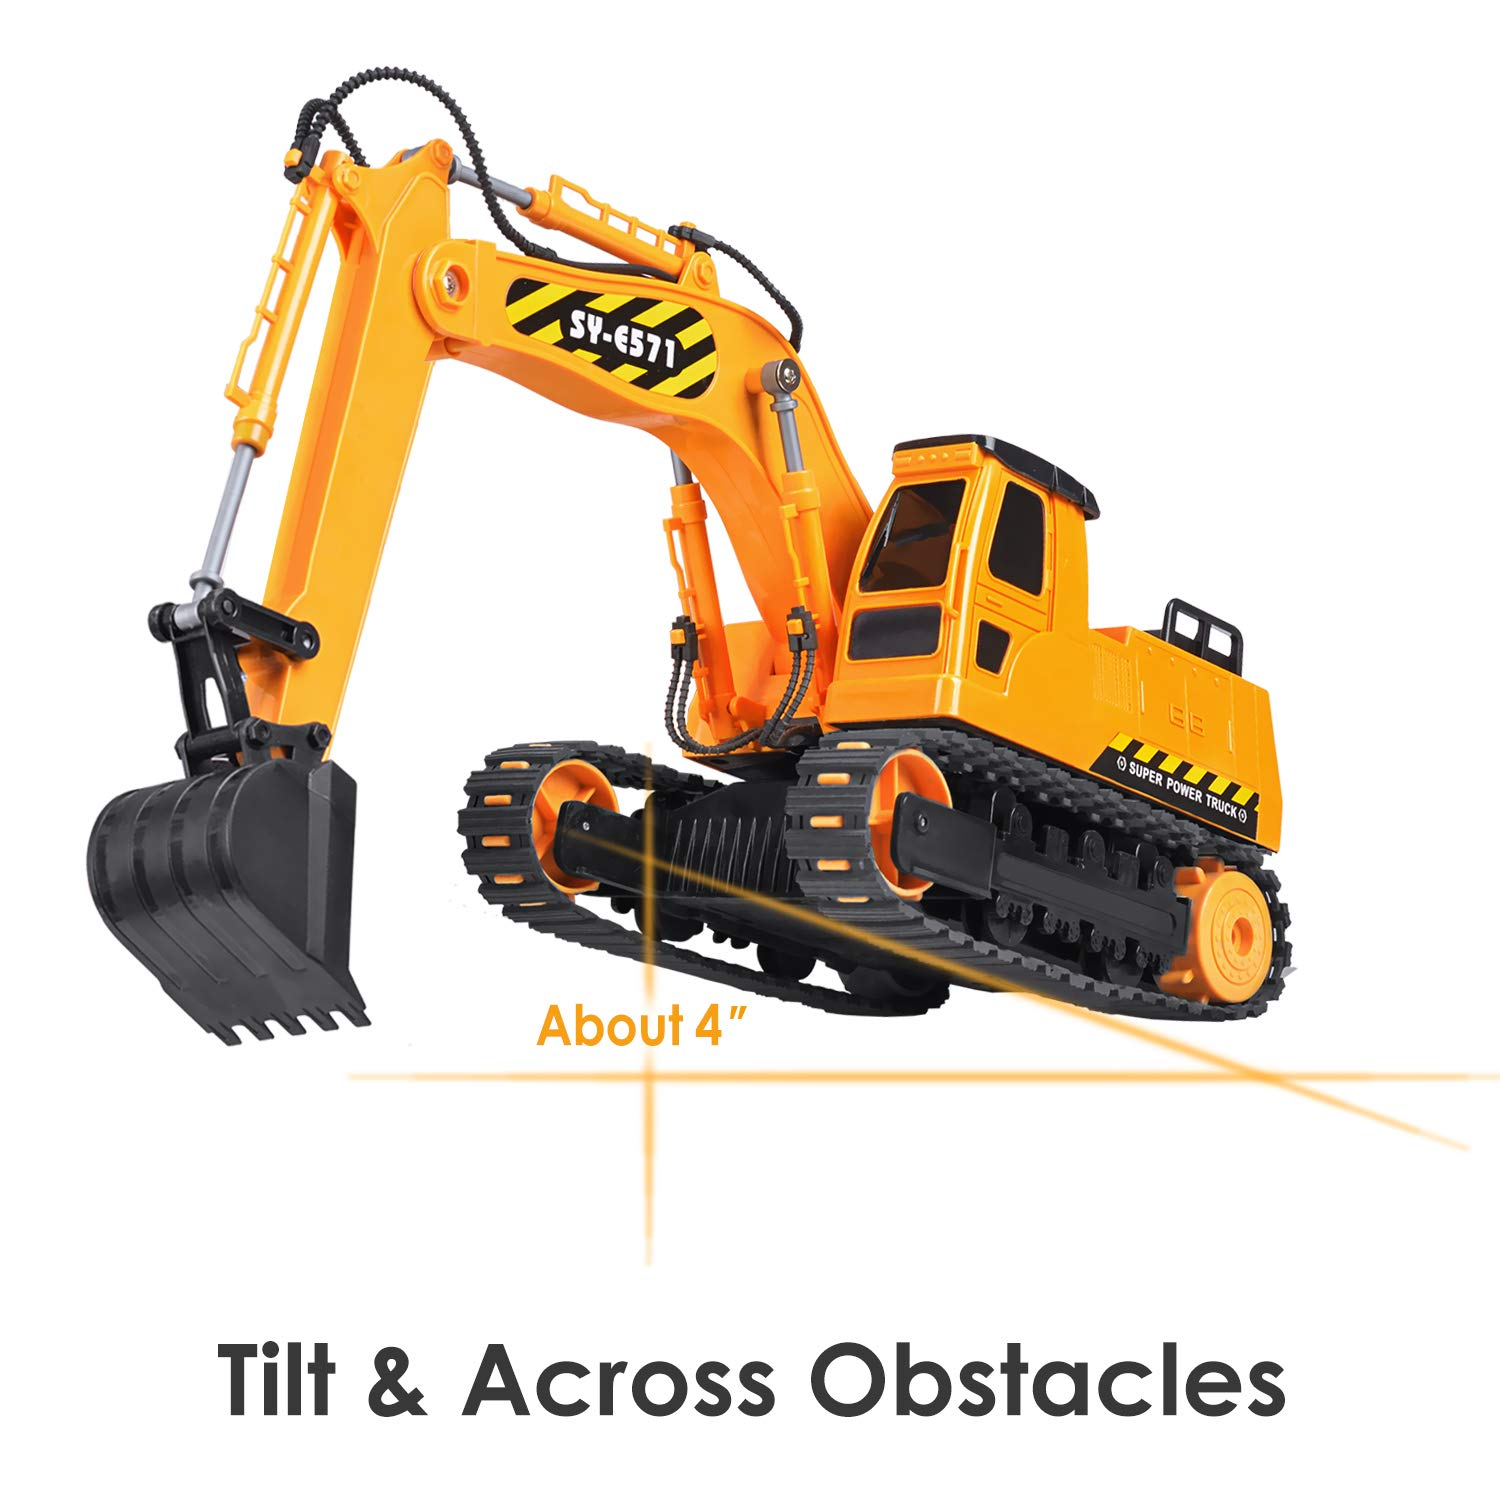 DOUBLE  E Remote Control Truck RC Excavator Toy with Rechargeable Battery Lights and Sounds 2.4GHz Construction Vehicles Tractor 1/26 by DOUBLE  E (Image #5)